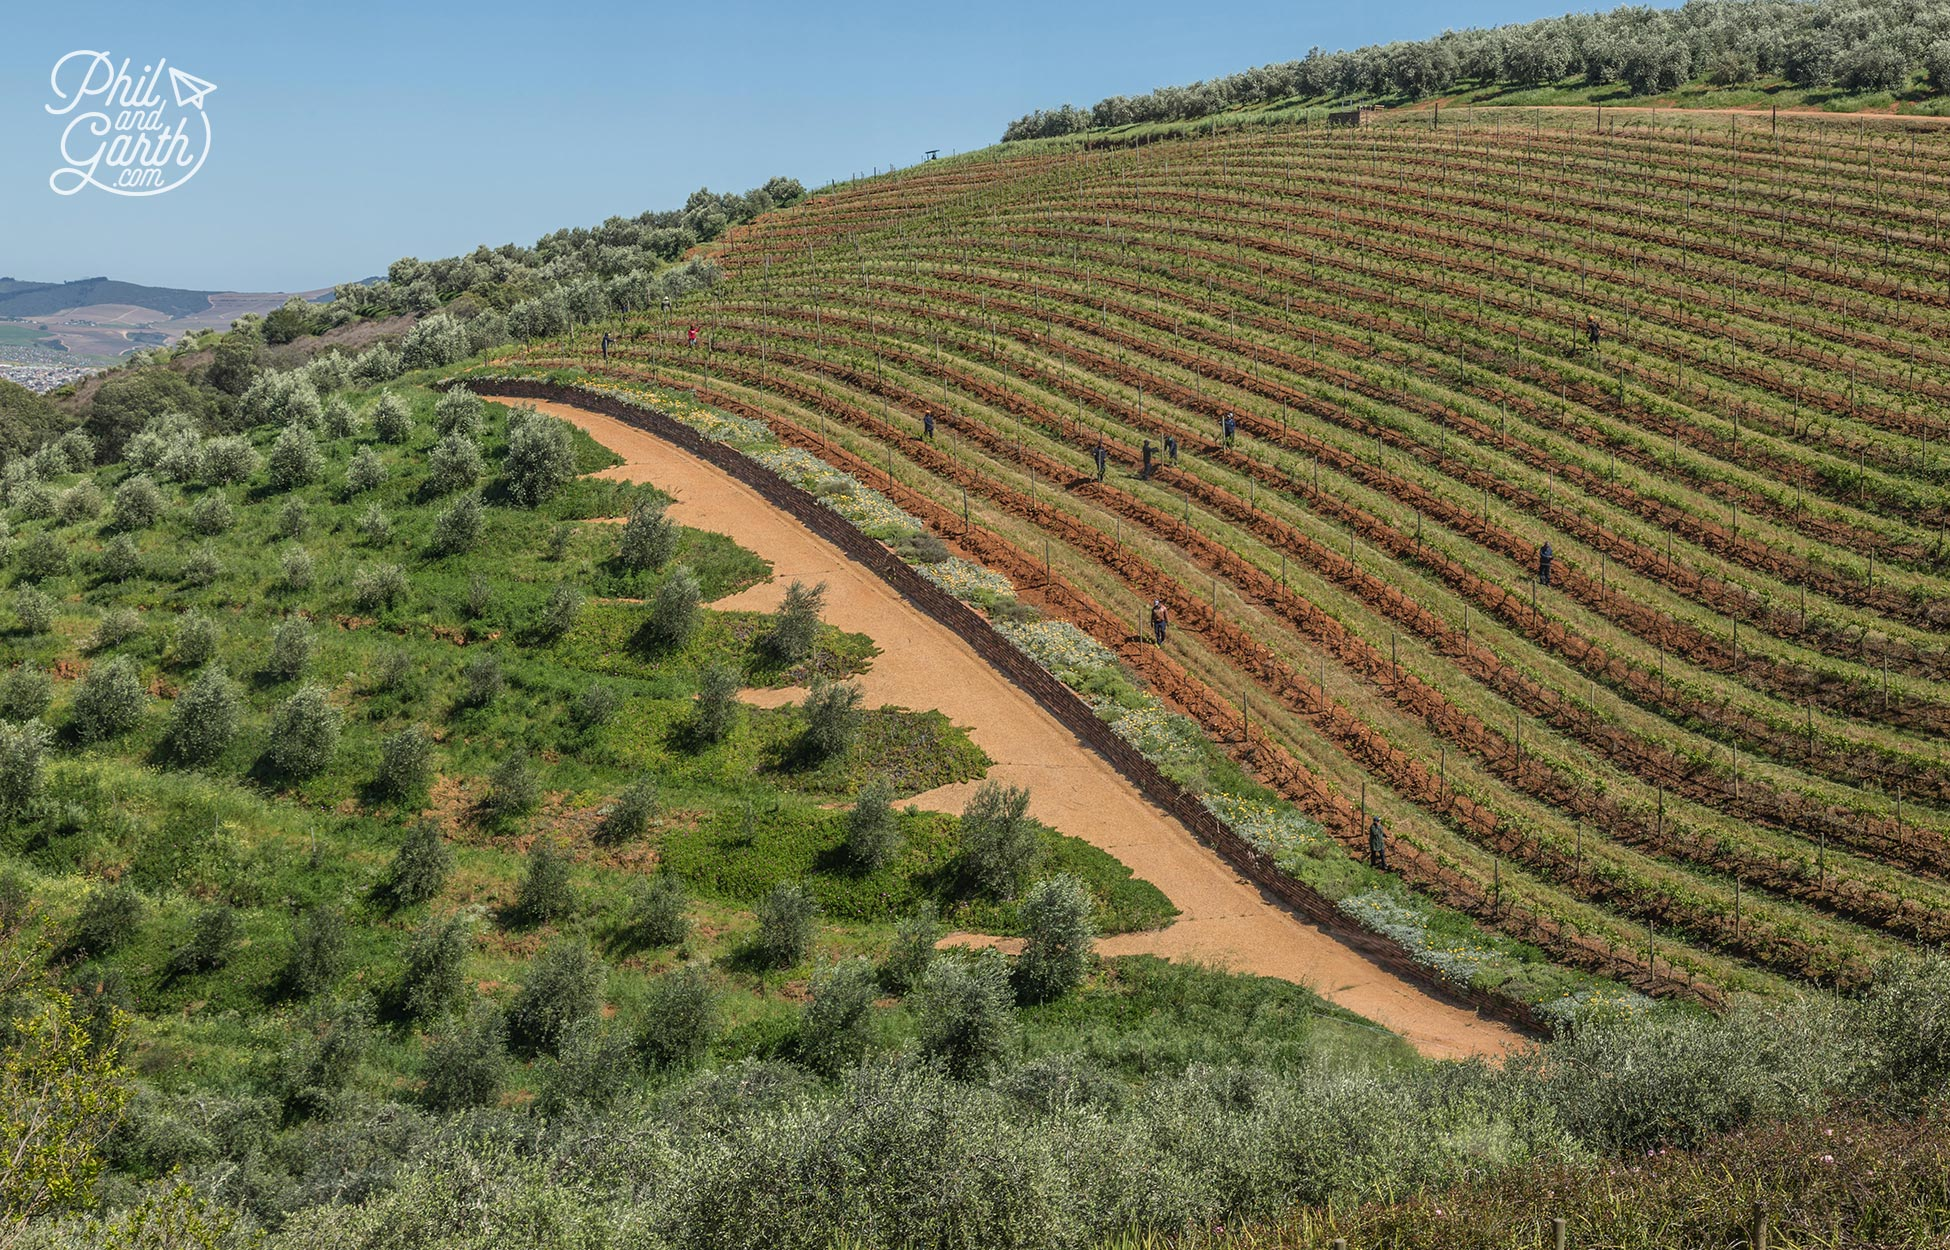 The Tokara estate's stunning landscape